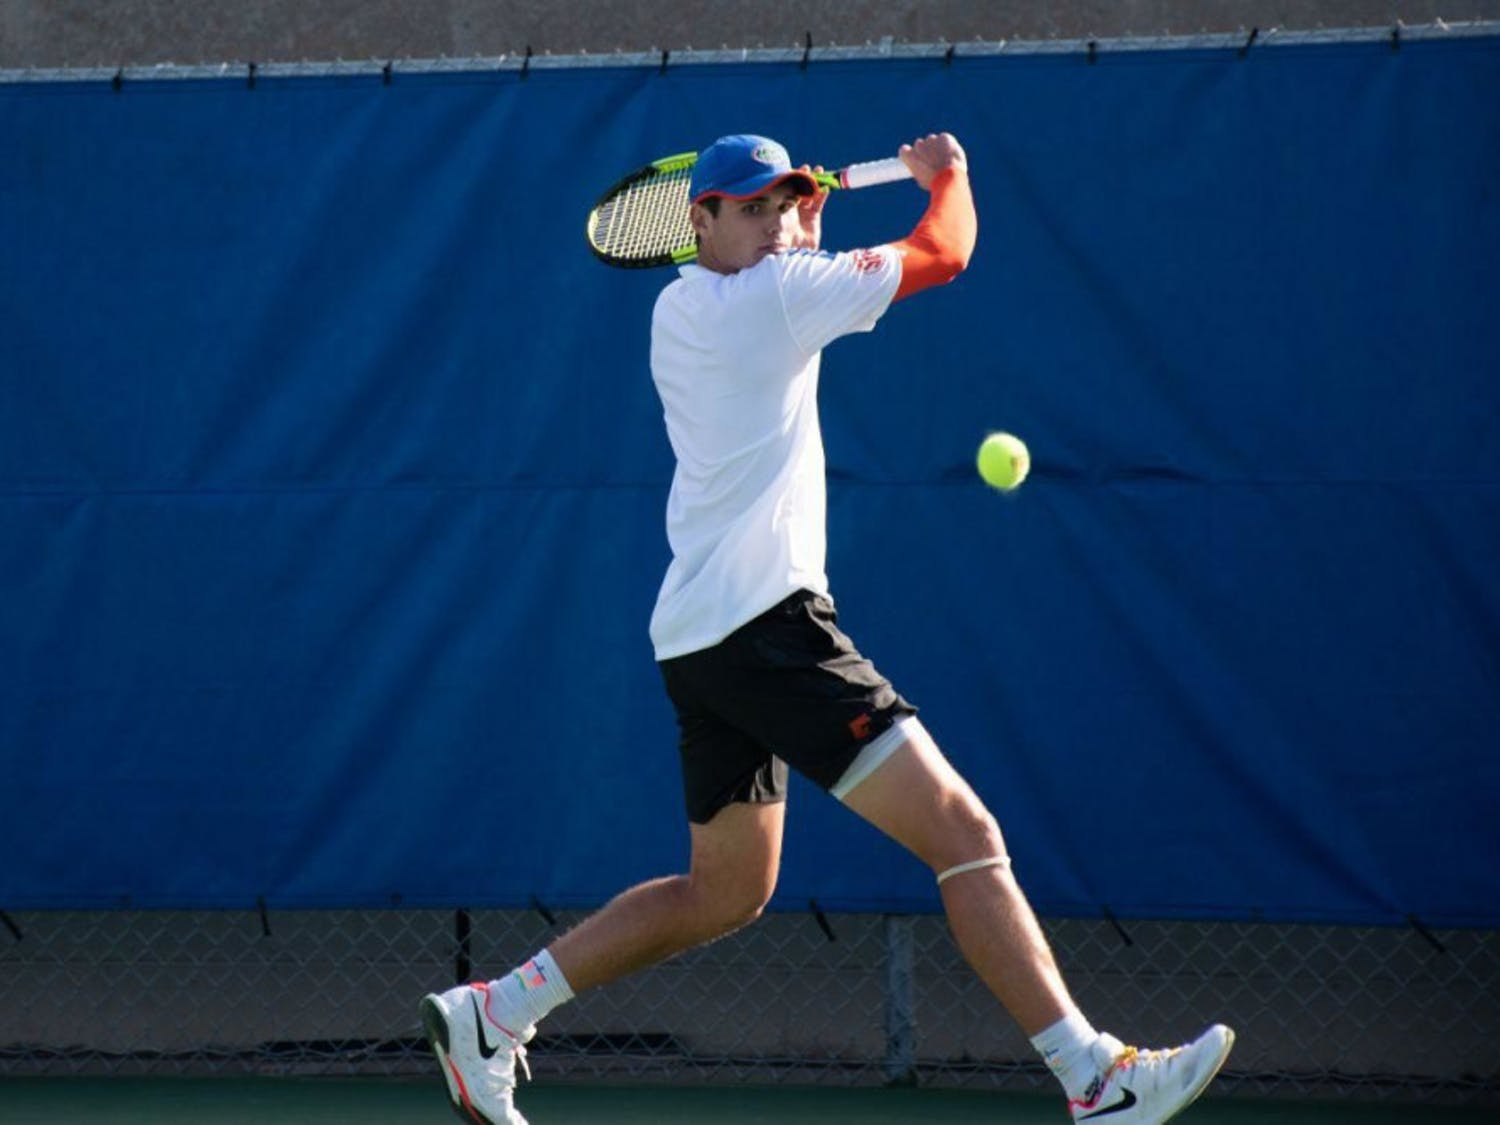 Sam Riffice (pictured) and Duarte Vale dominated doubles play in a 7-0 victory for the men's tennis team.